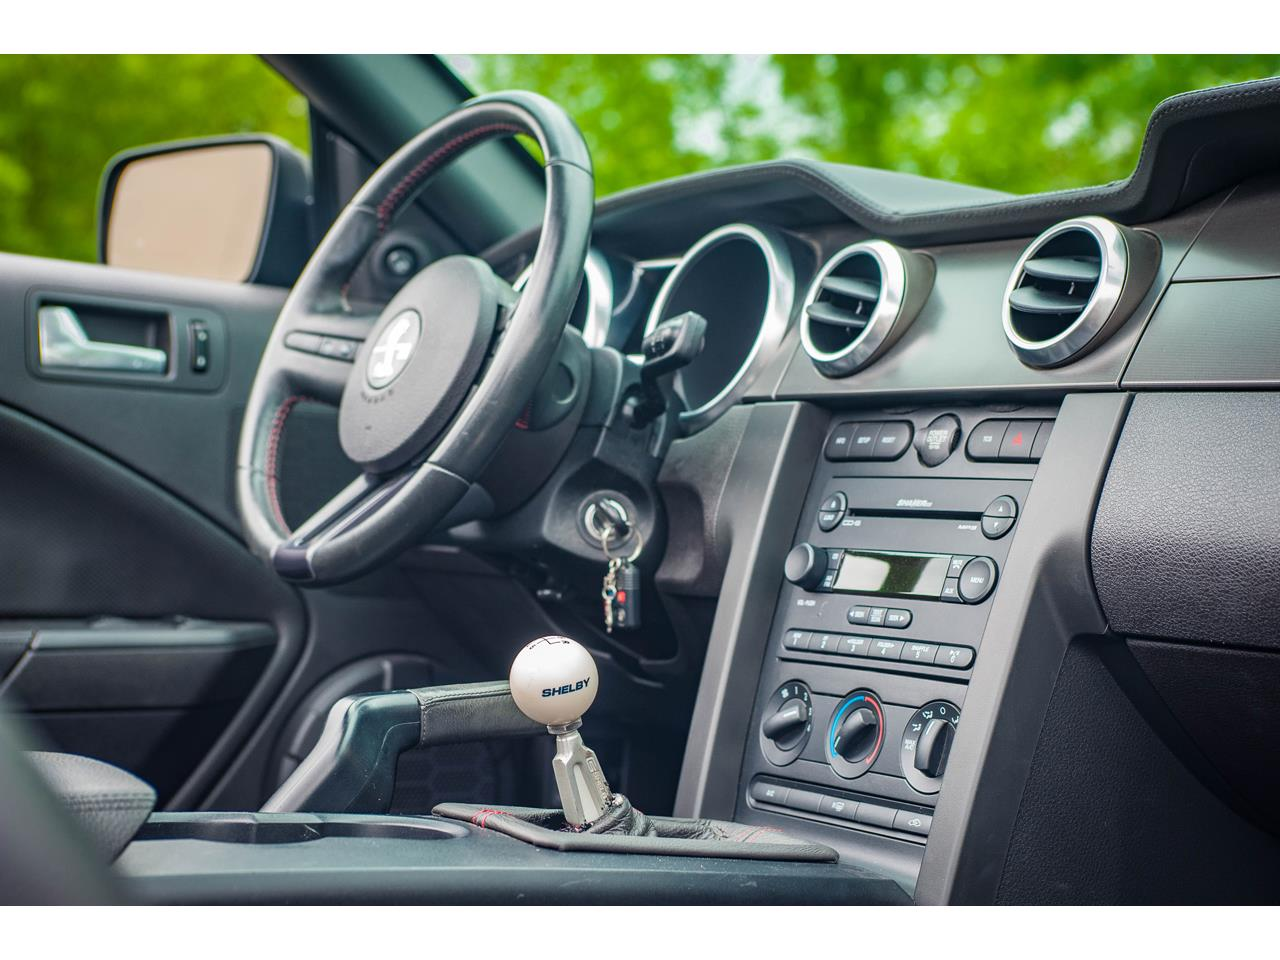 Large Picture of 2007 Mustang located in Illinois Offered by Gateway Classic Cars - St. Louis - QB98